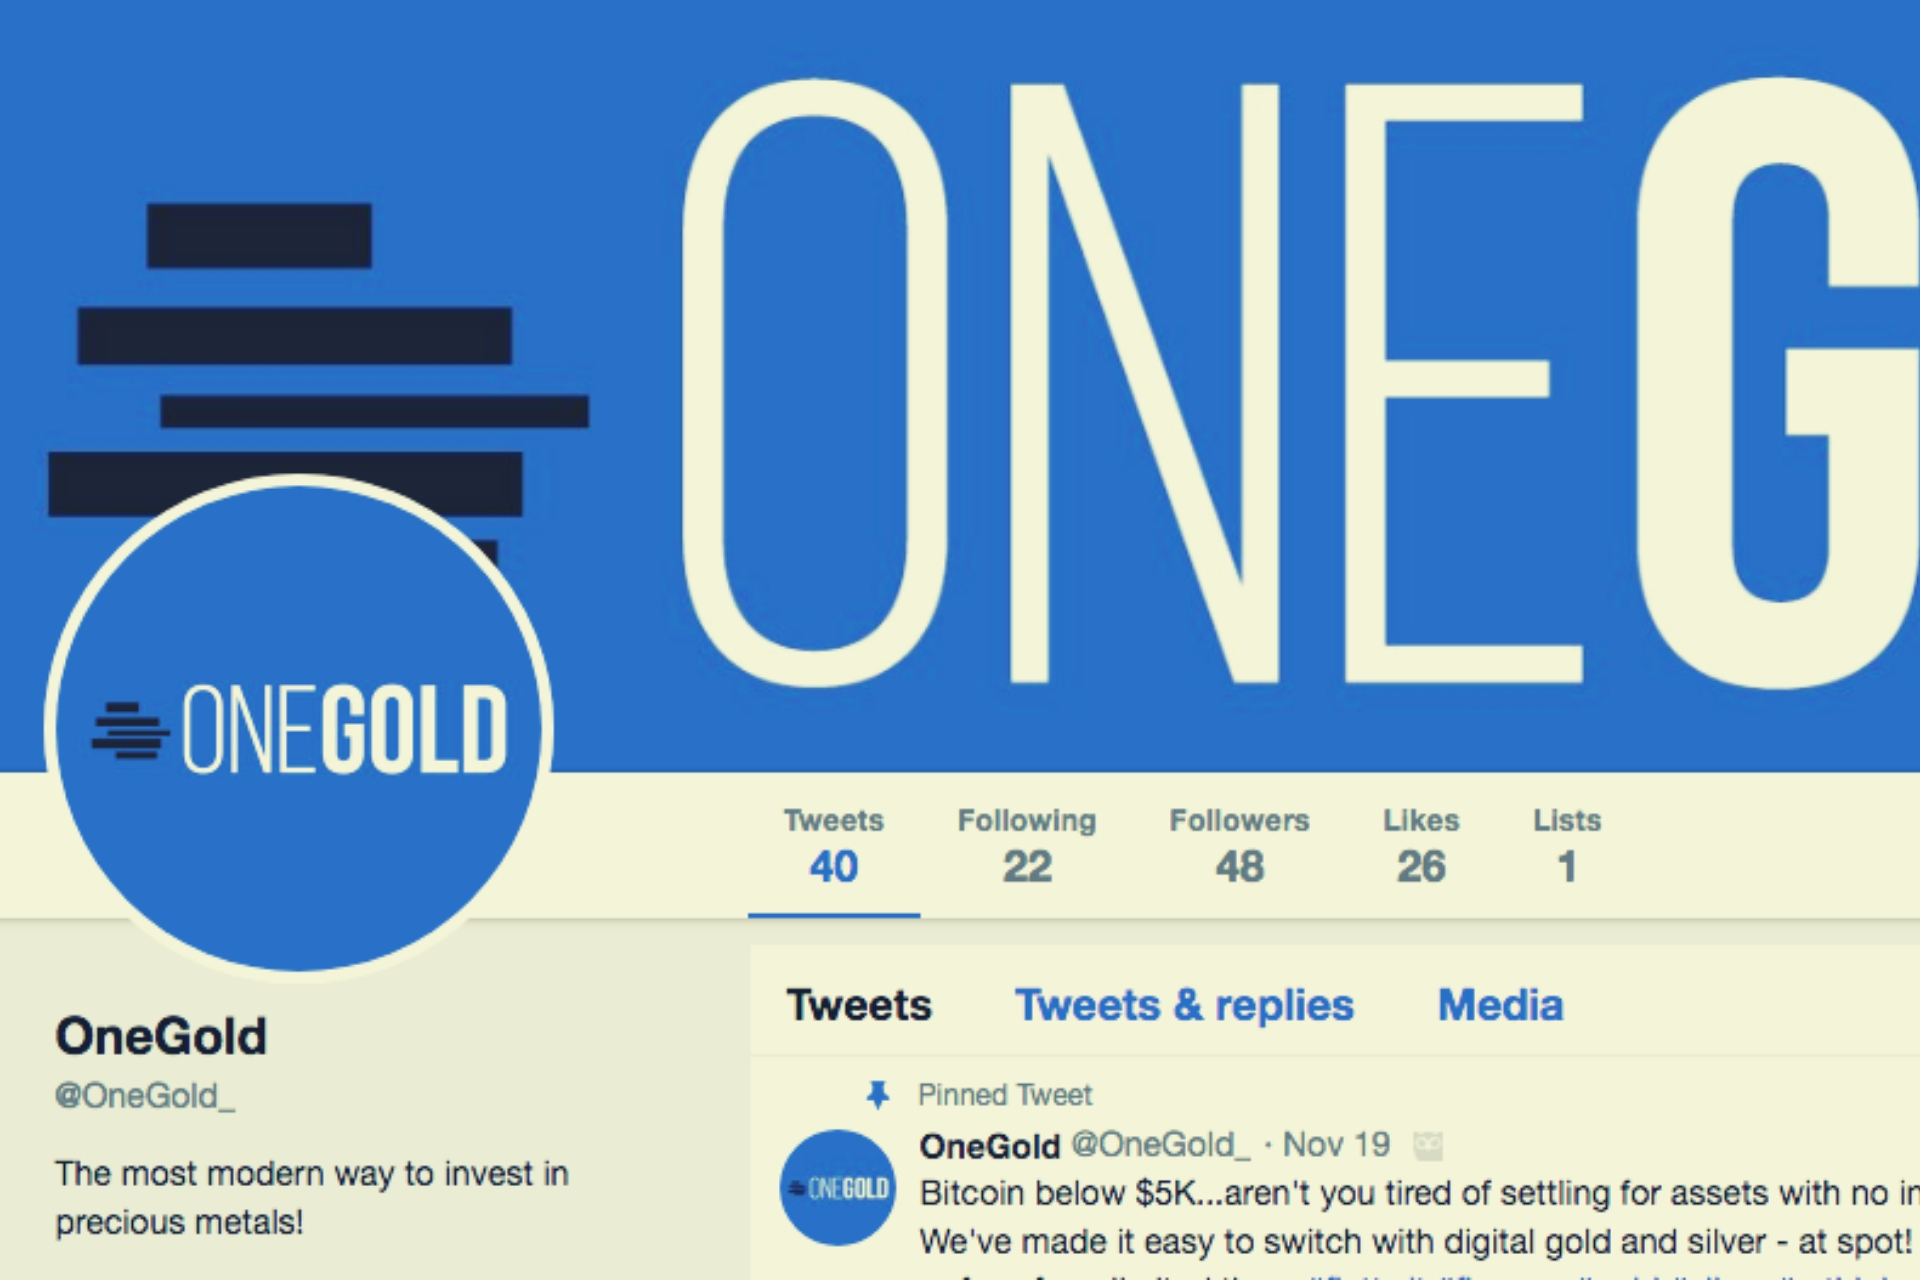 Onegold has Announced Support for Bitcoin Cash (BCH) and Bitcoin